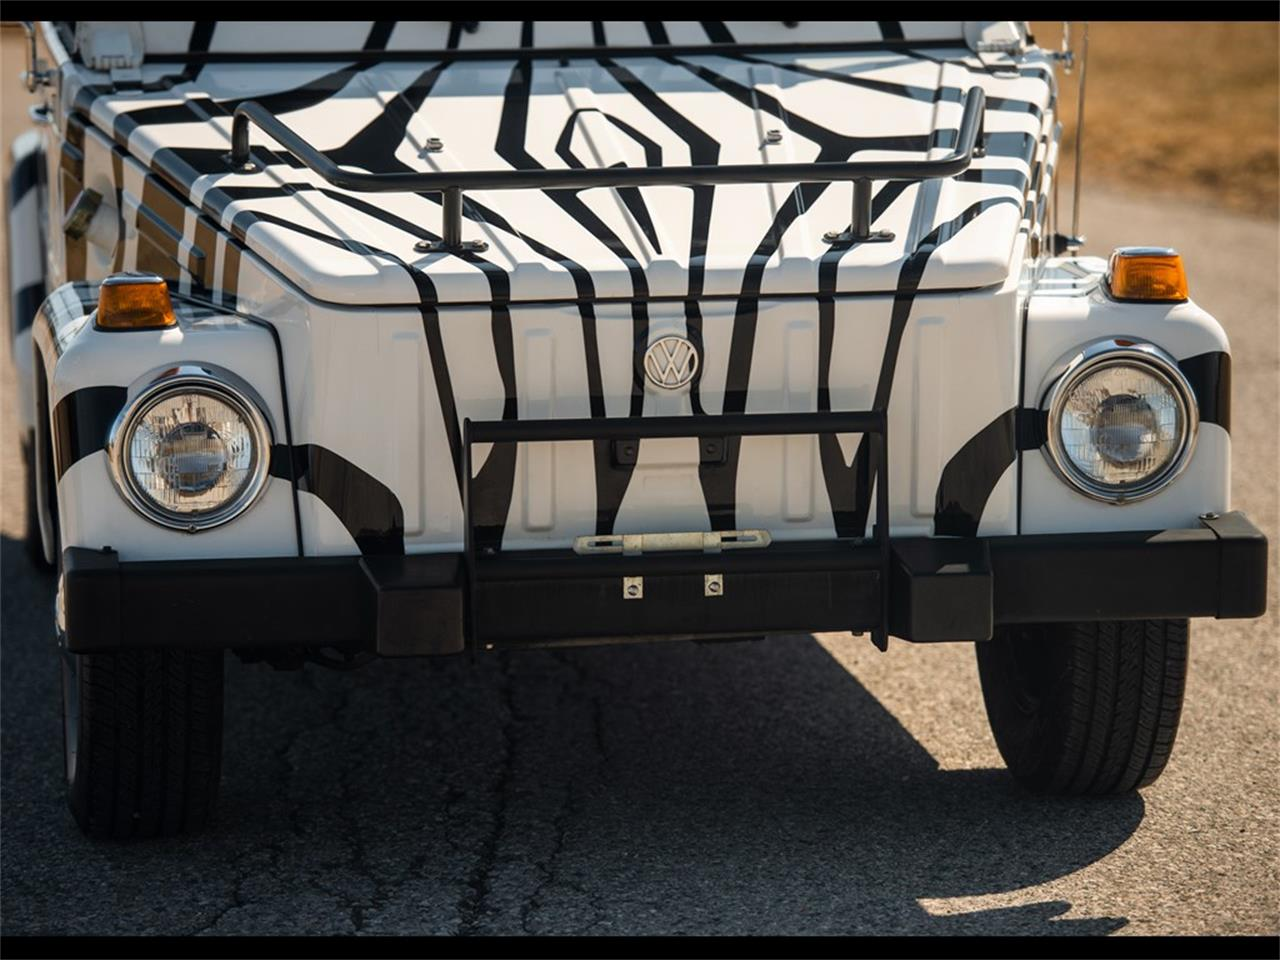 1973 Volkswagen Thing for sale in Fort Lauderdale, FL – photo 7